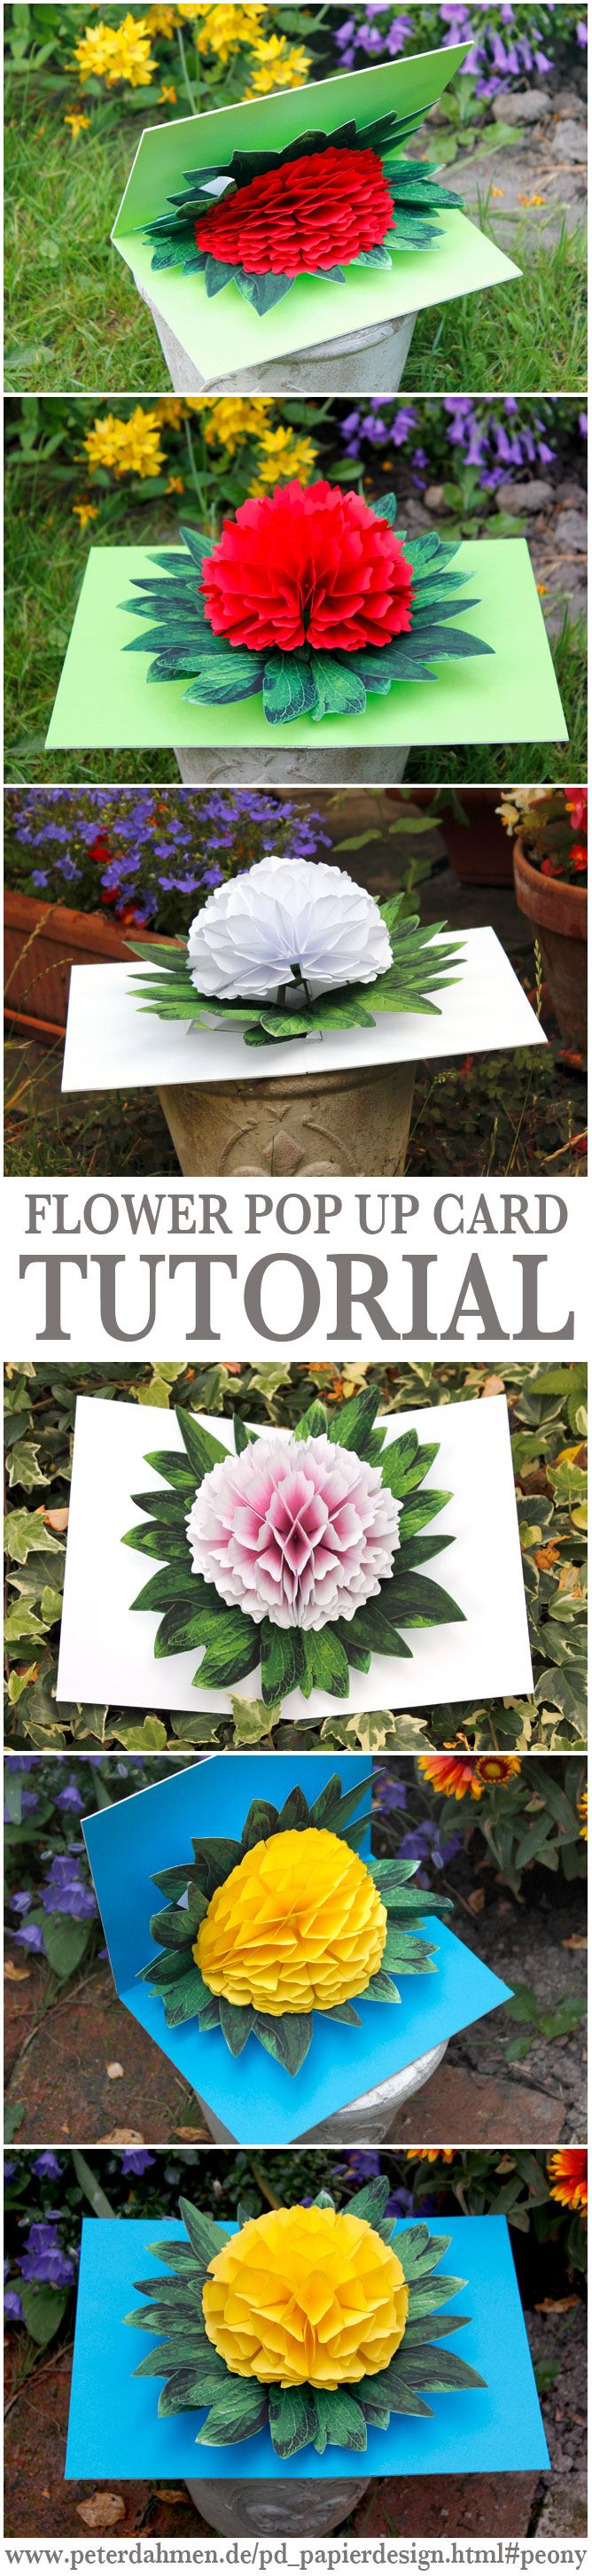 Flower Pop Up Card Tutorial by Peter Dahmen (just click on the flower to go to the tutorial)  Genial !